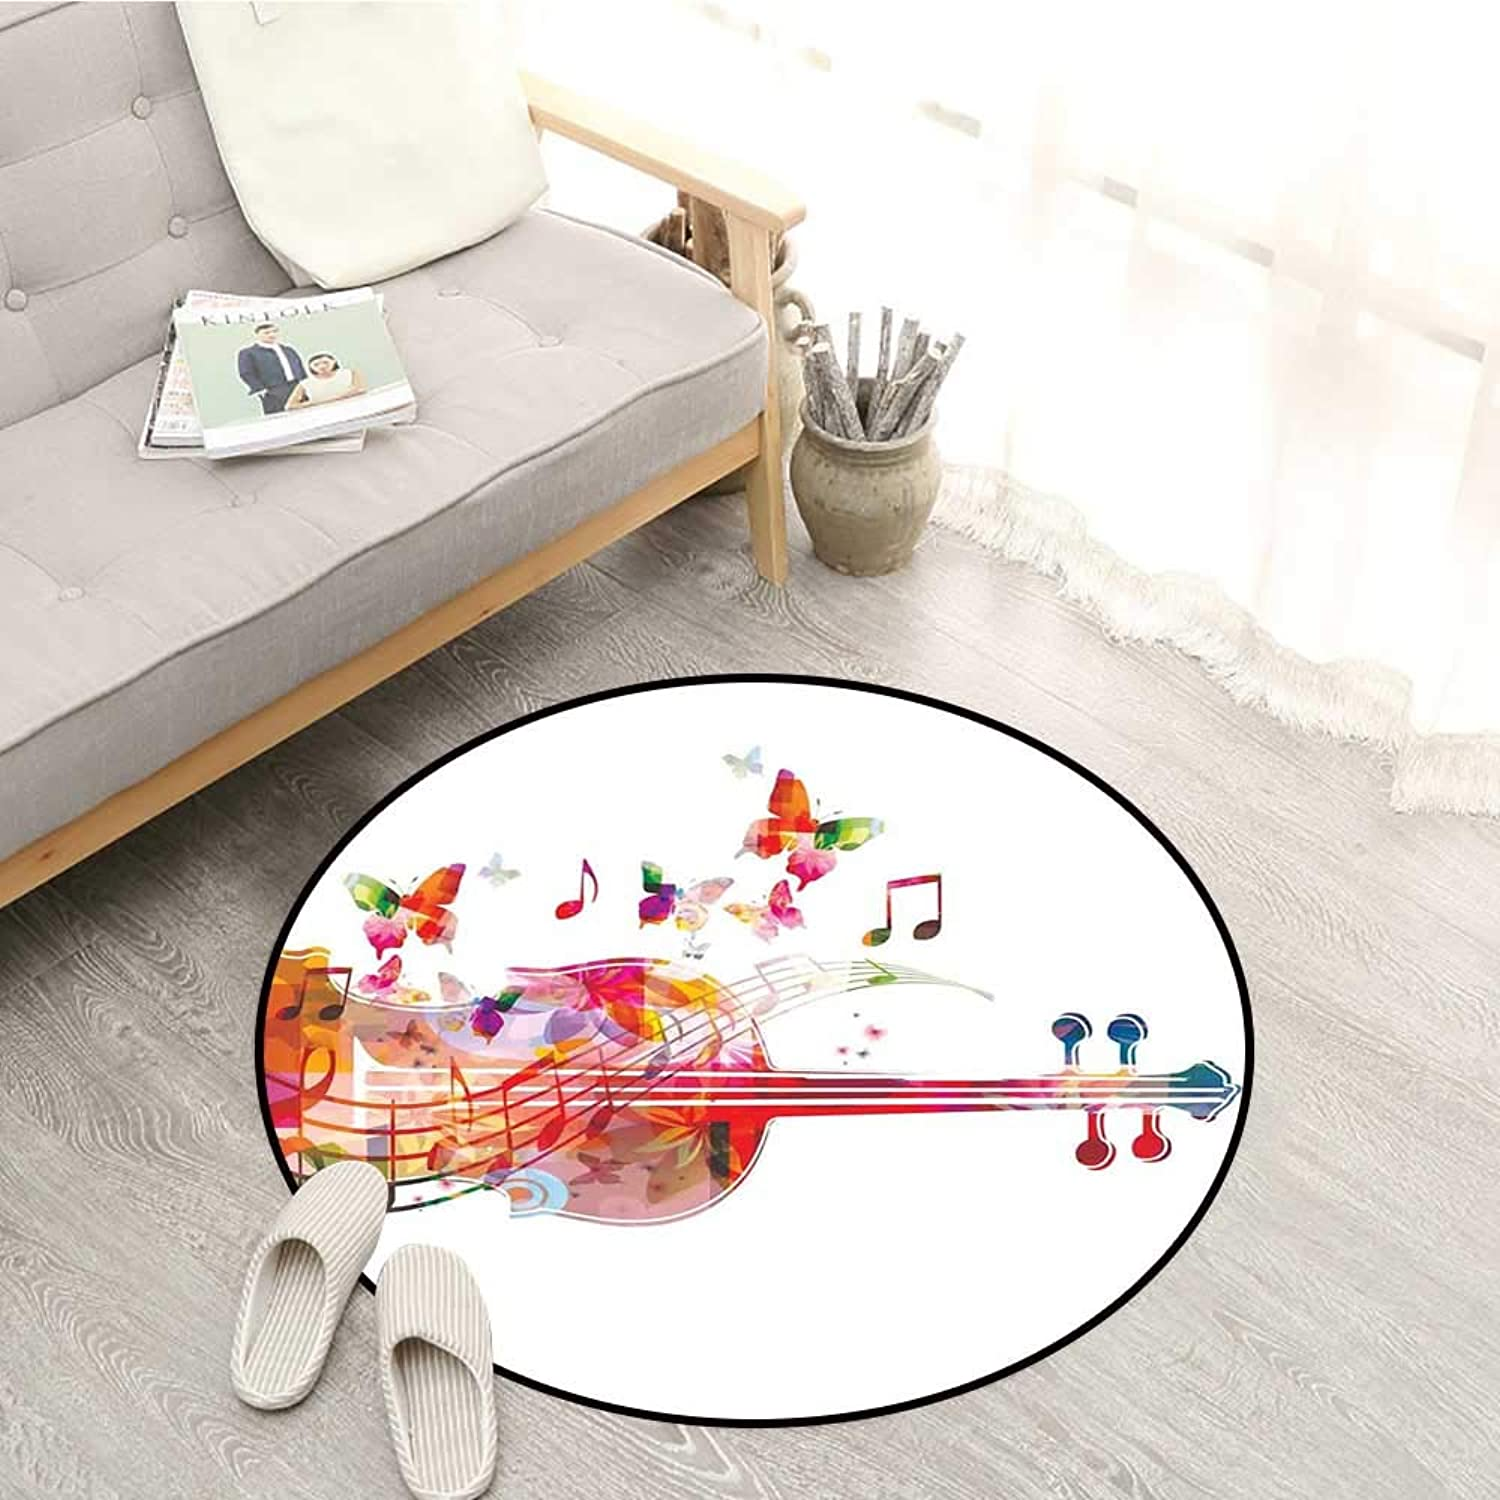 Music Decor Kids Rugs Violoncello with Butterflies Festive Summery Blooms Happy Artful Design Sofa Coffee Table Mat 3'11